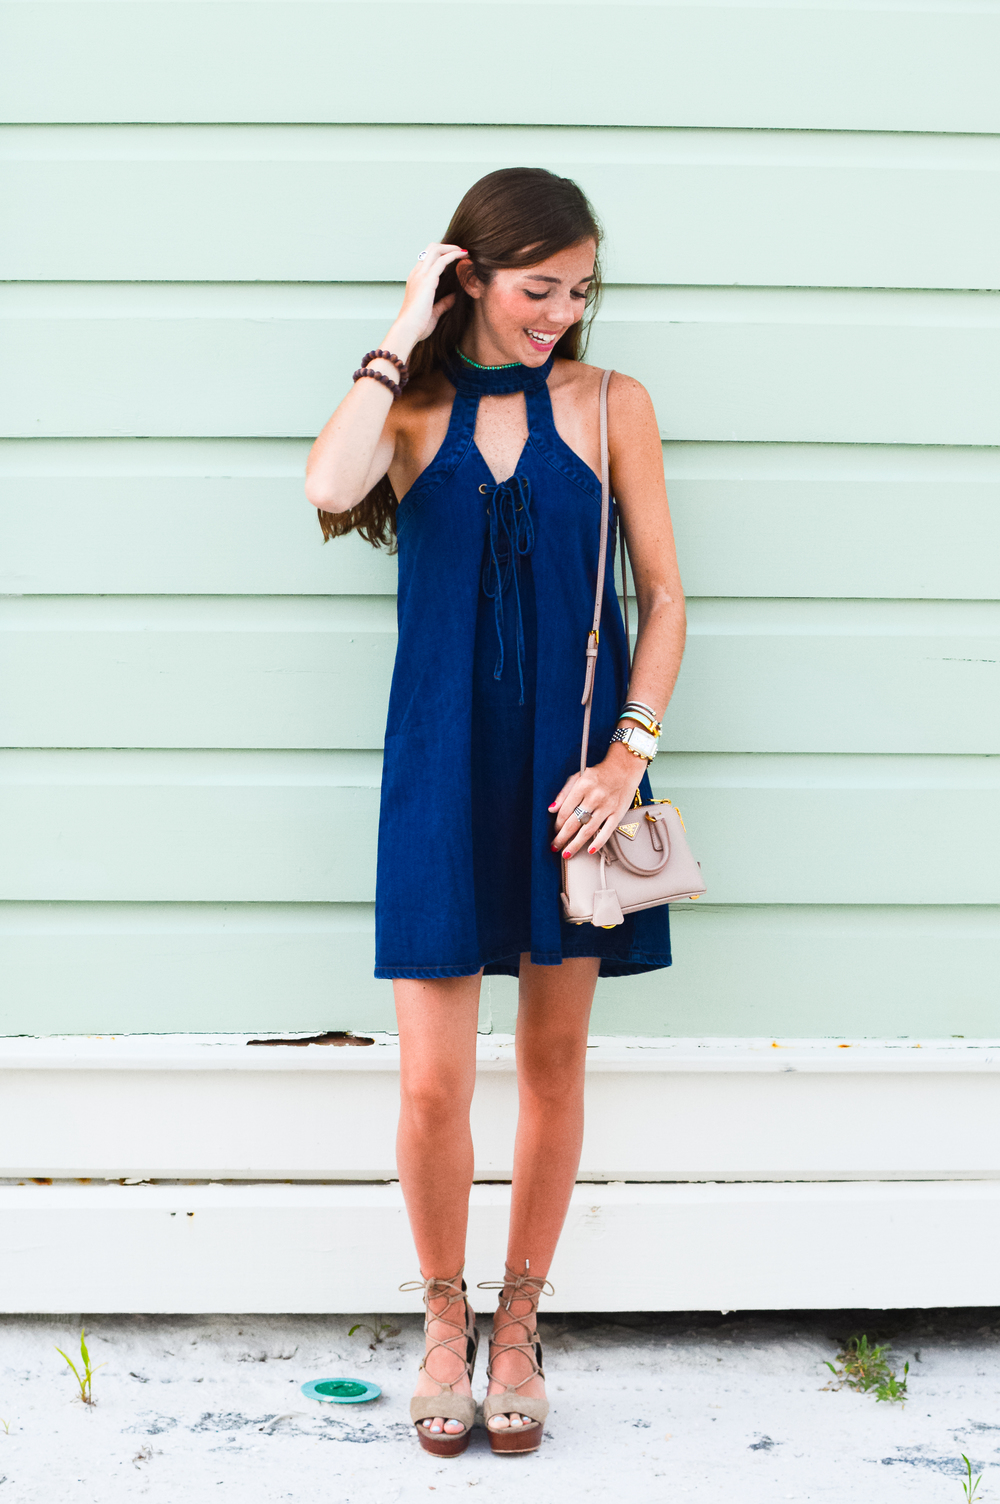 fashion blogger lcb style blue dress (11 of 14).jpg